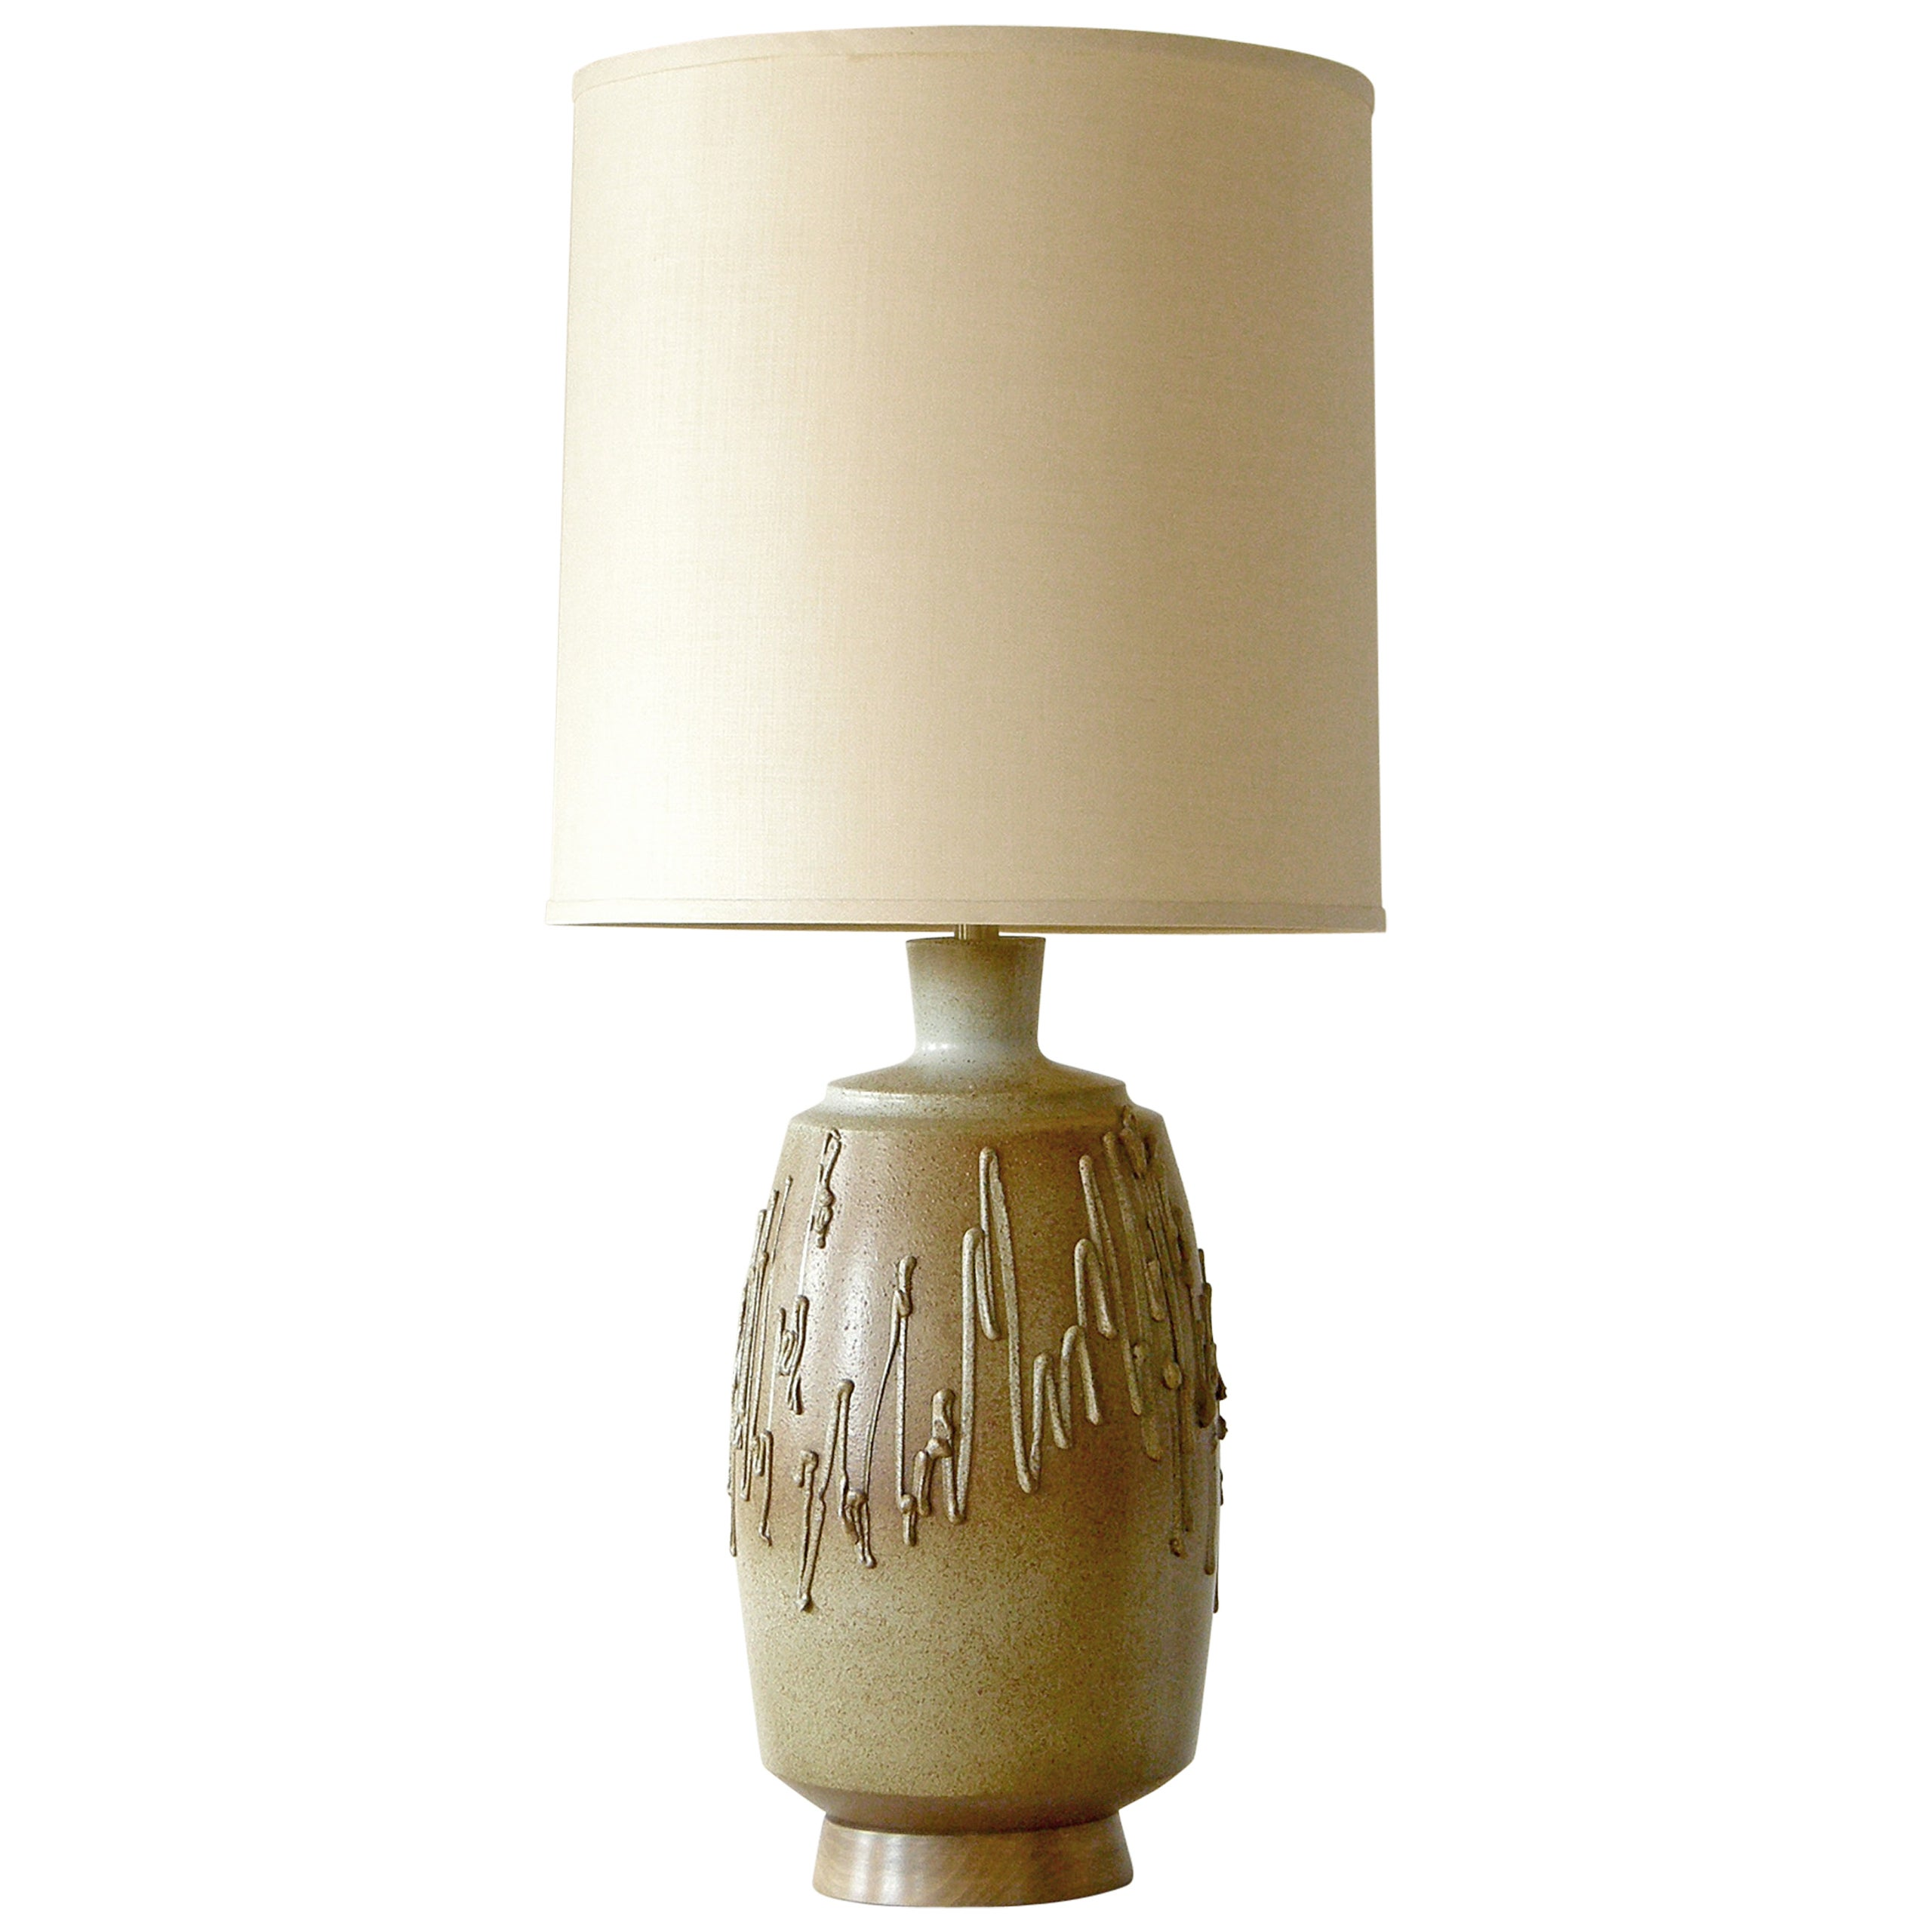 David Cressey Ceramic Table Lamp for Architectural Pottery with Textured Surface